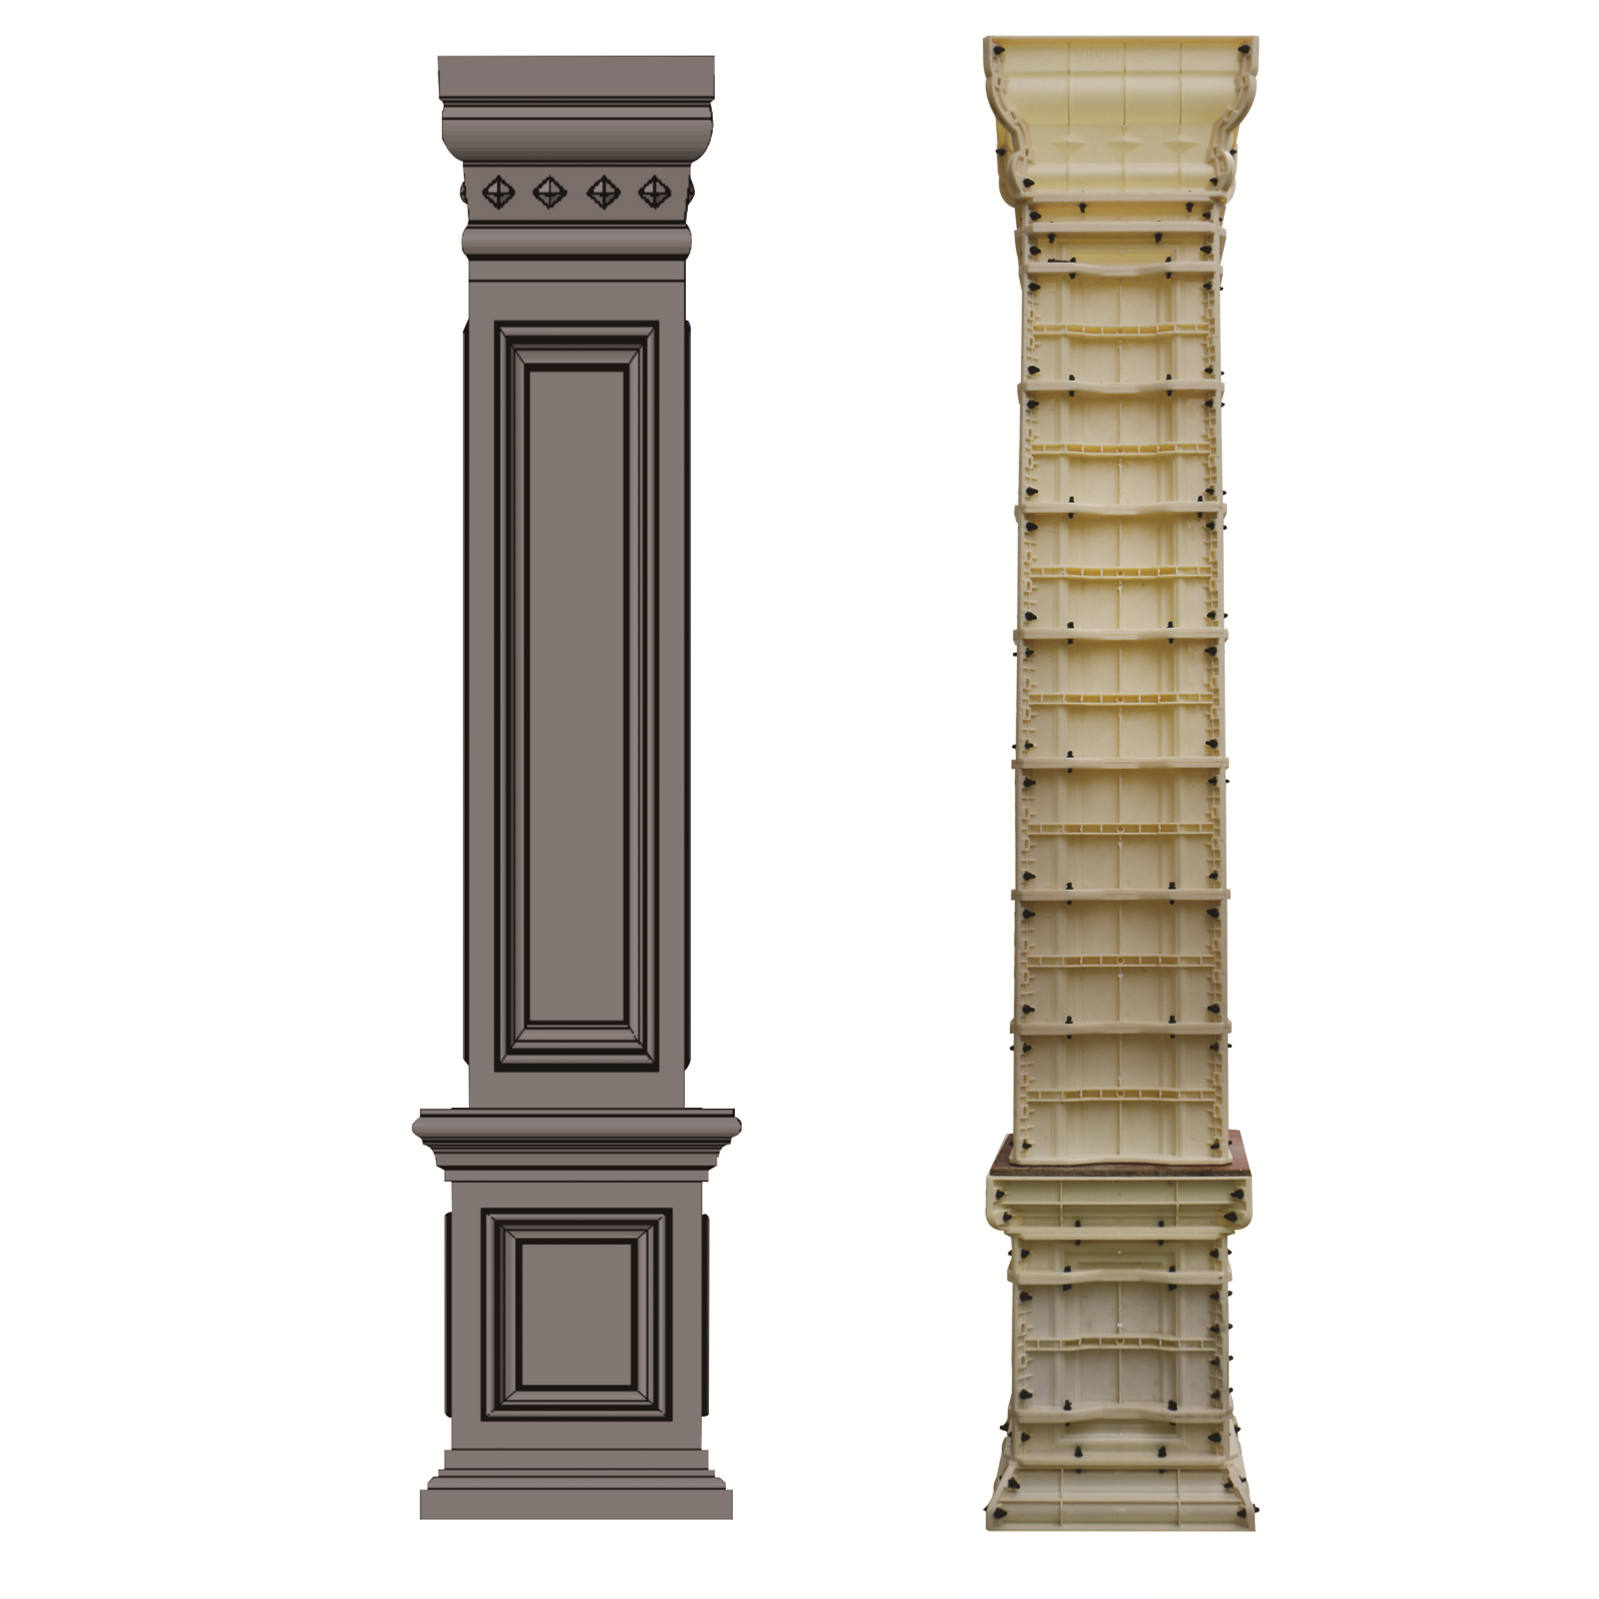 2019 New Arrival Square Pillar Concrete Roman Column Mold From Factory